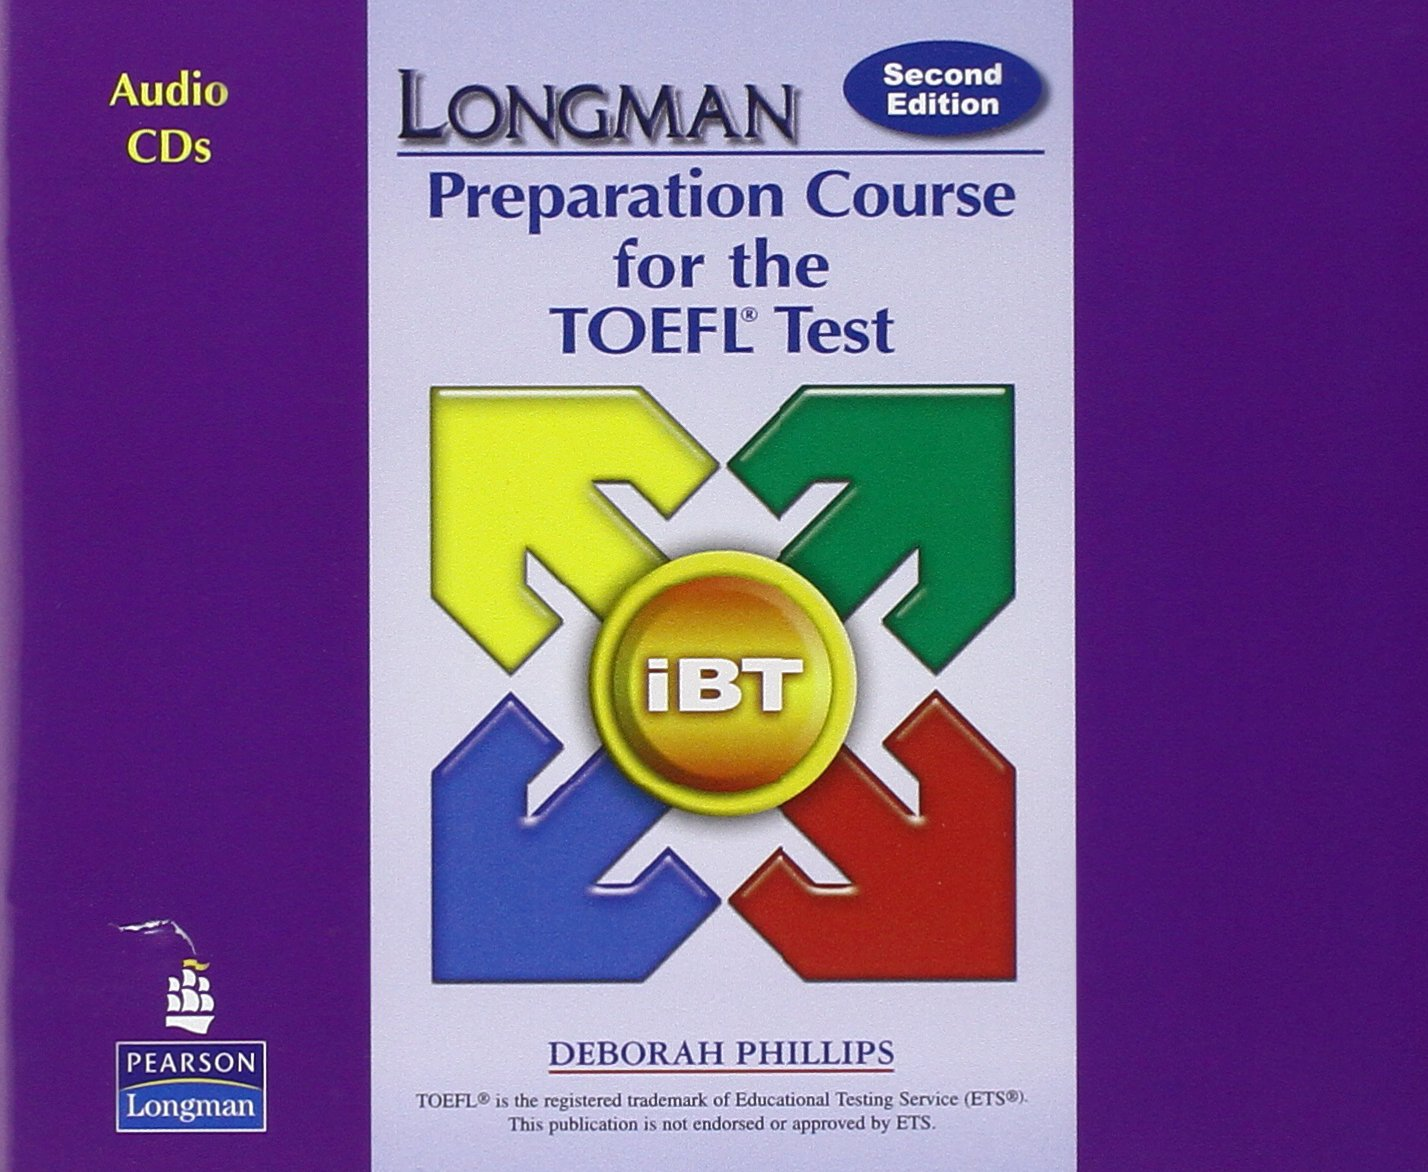 longman preparation course for the toefl test ibt audio cds